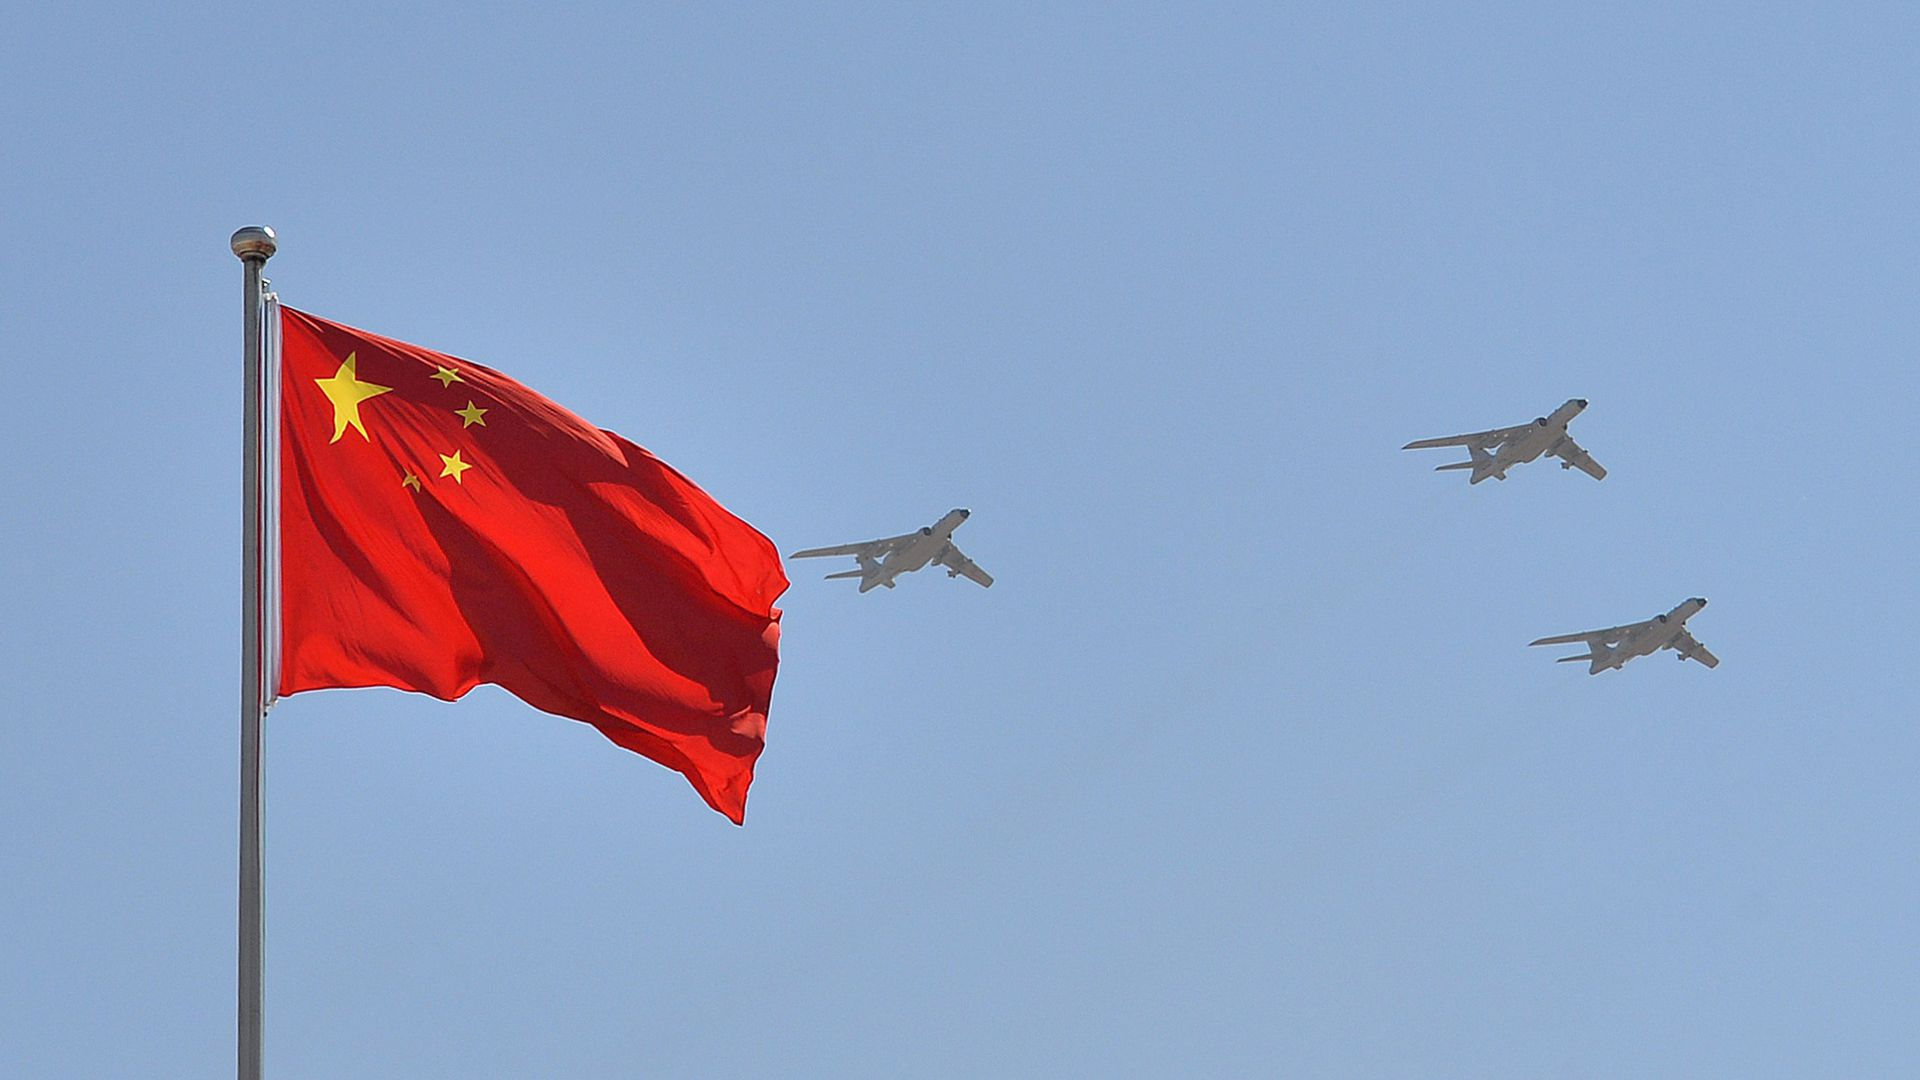 H-6K bomber with Chinese flag